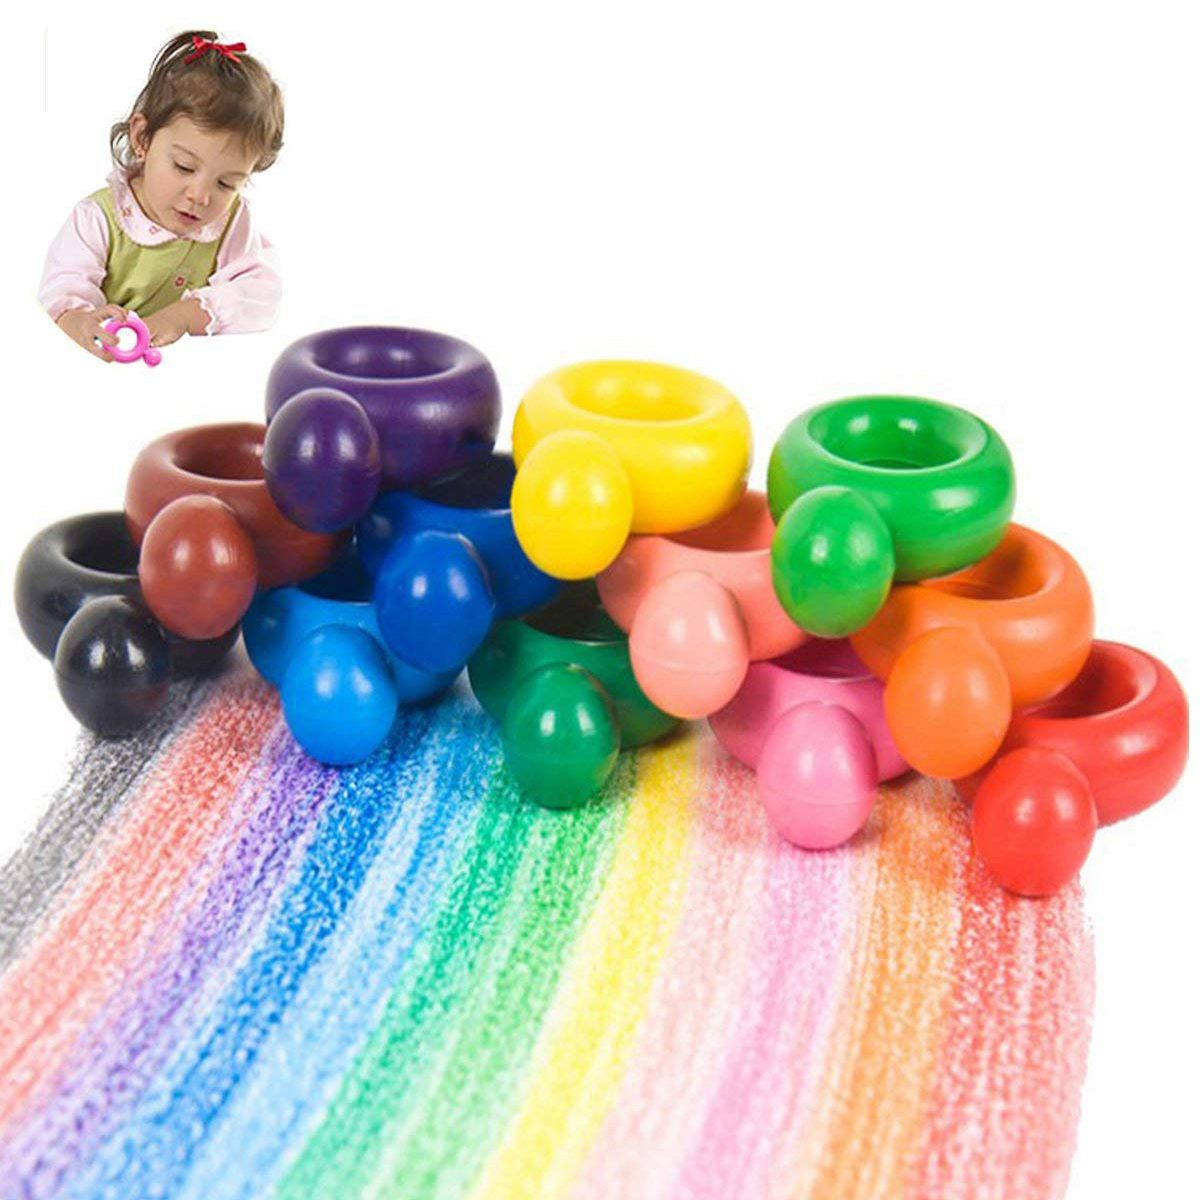 Toddler Crayons, 12 Colors Paint Crayons For Babies, Ring Shaped Washable Wax Crayons For Toddlers, Palm-Grip Crayons Doodle T